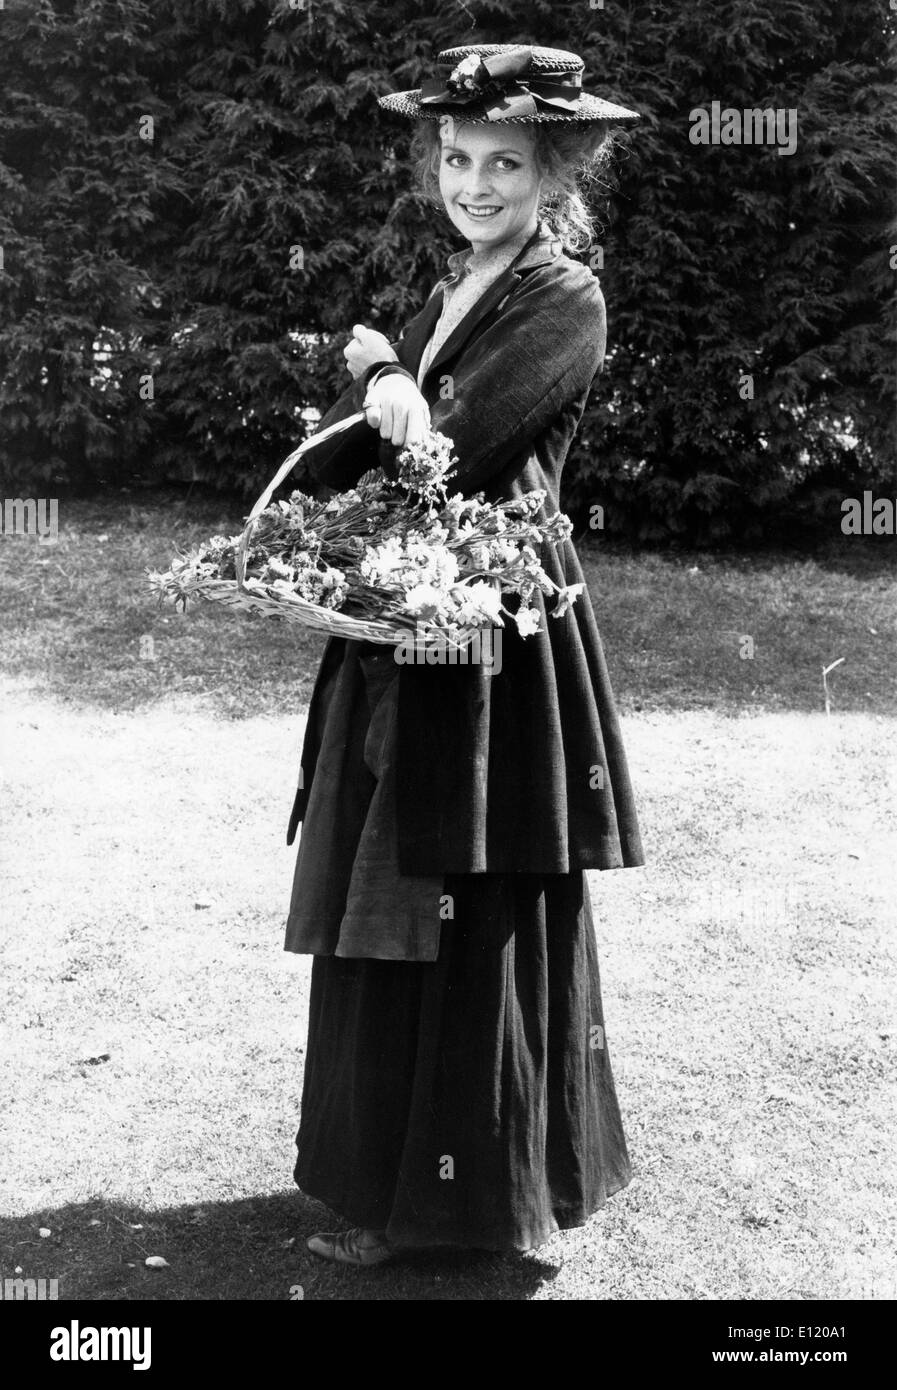 Model Twiggy in the television version of 'Pygmalion' - Stock Image